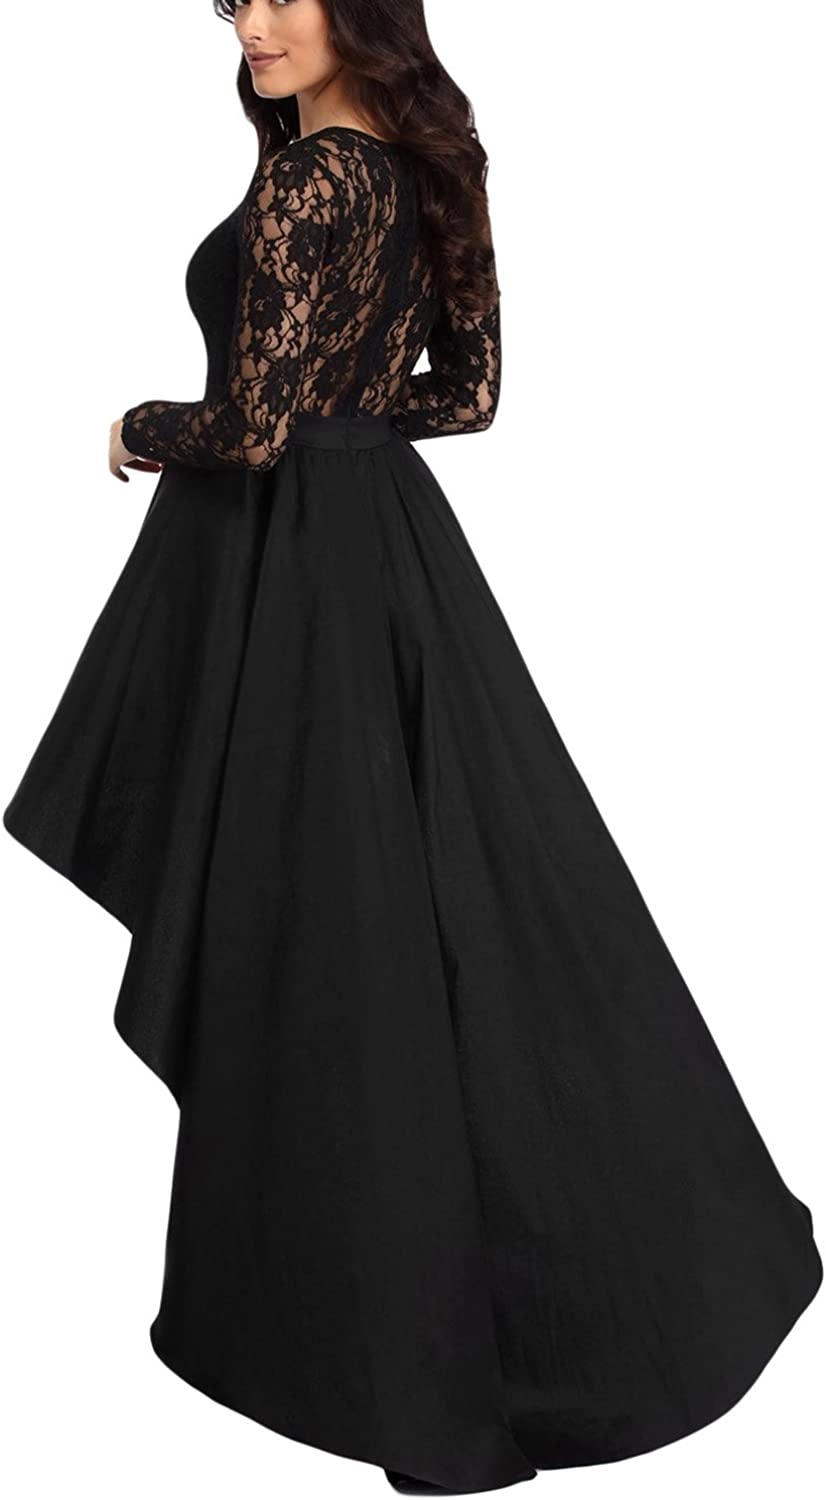 Bdcoco Women's Vintage Lace Long Sleeve High Low Cocktail Party Dress: Clothing